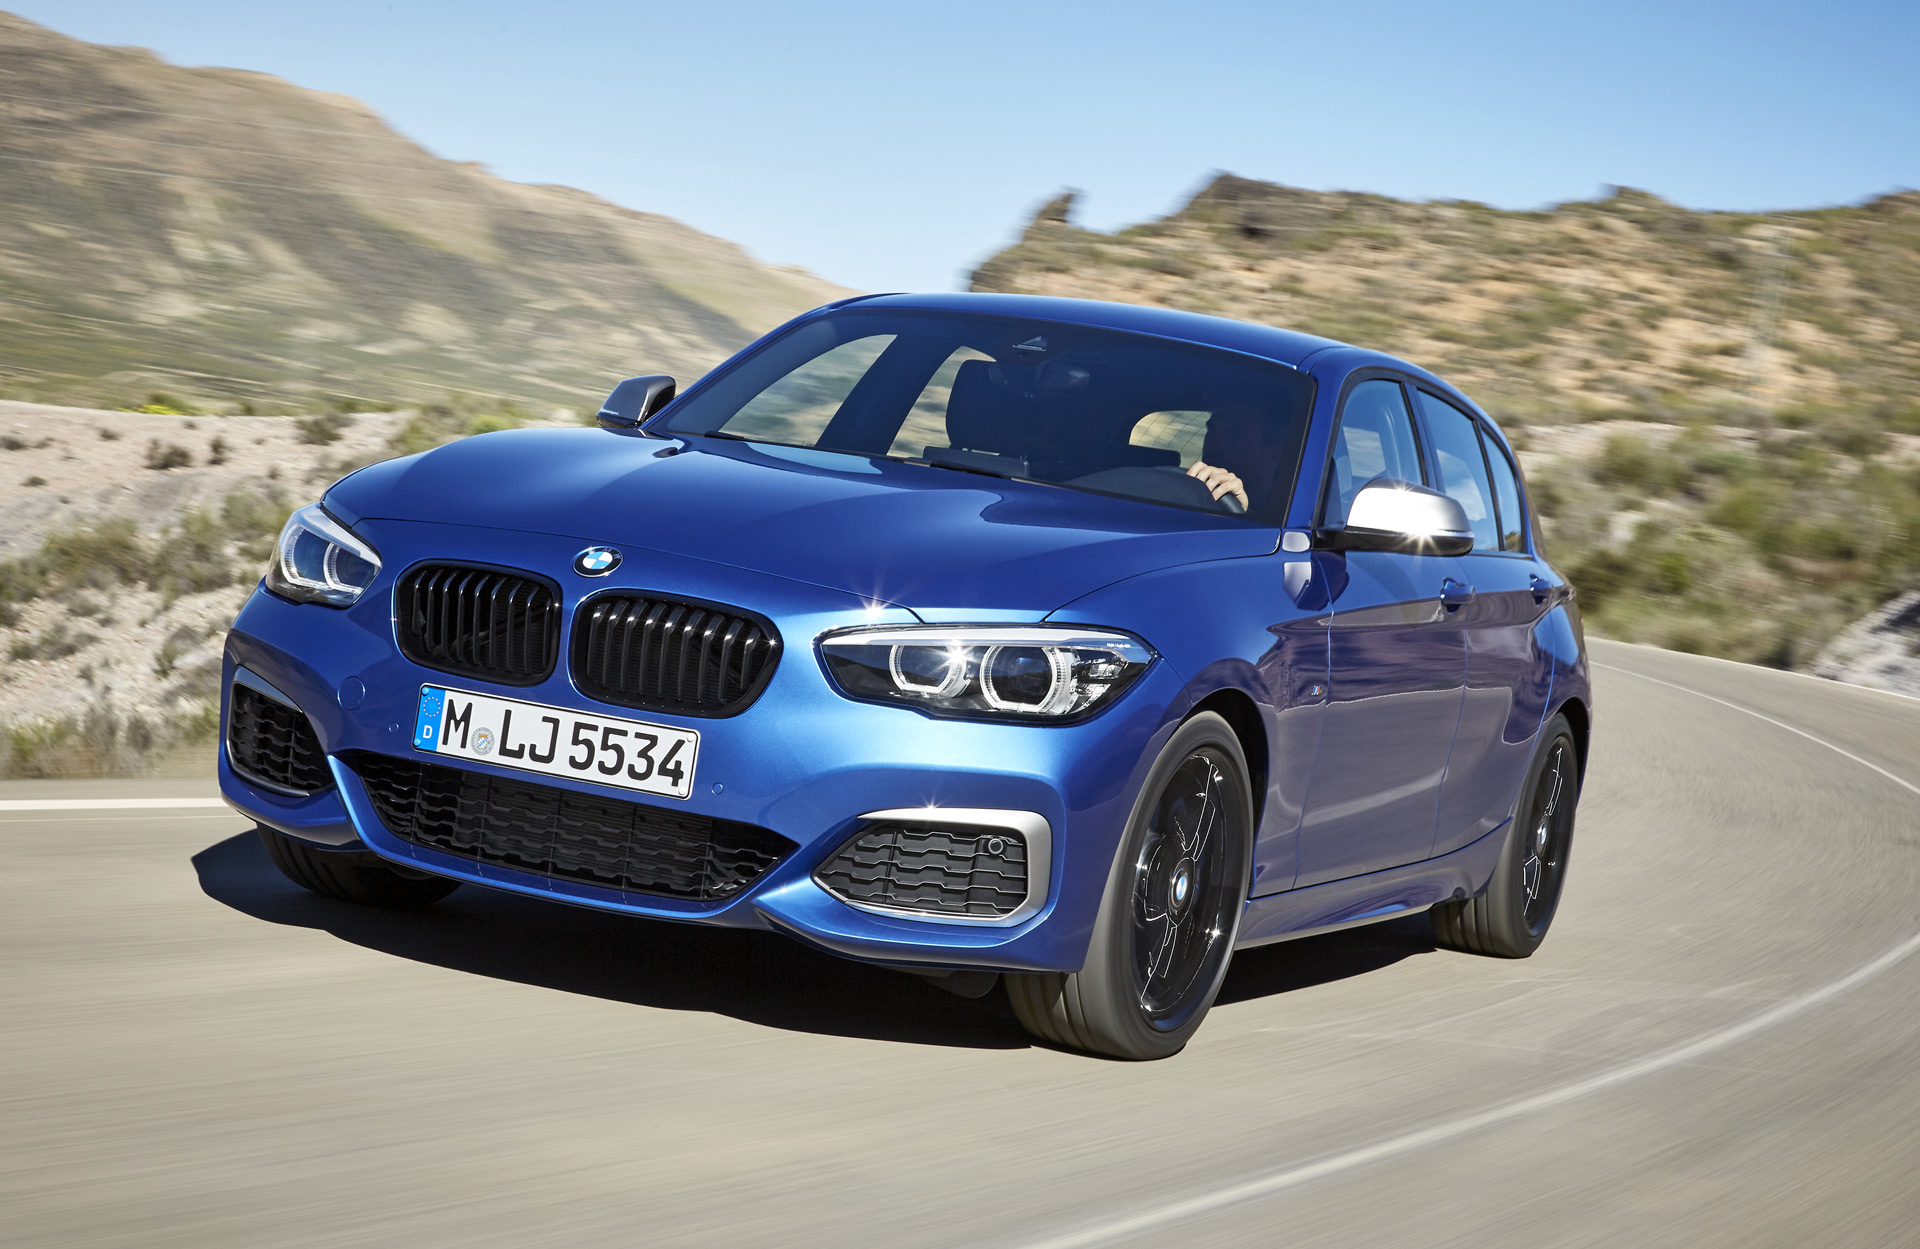 bmw 1 series hatchback gets minor updates ahead of redesigned model s arrival. Black Bedroom Furniture Sets. Home Design Ideas